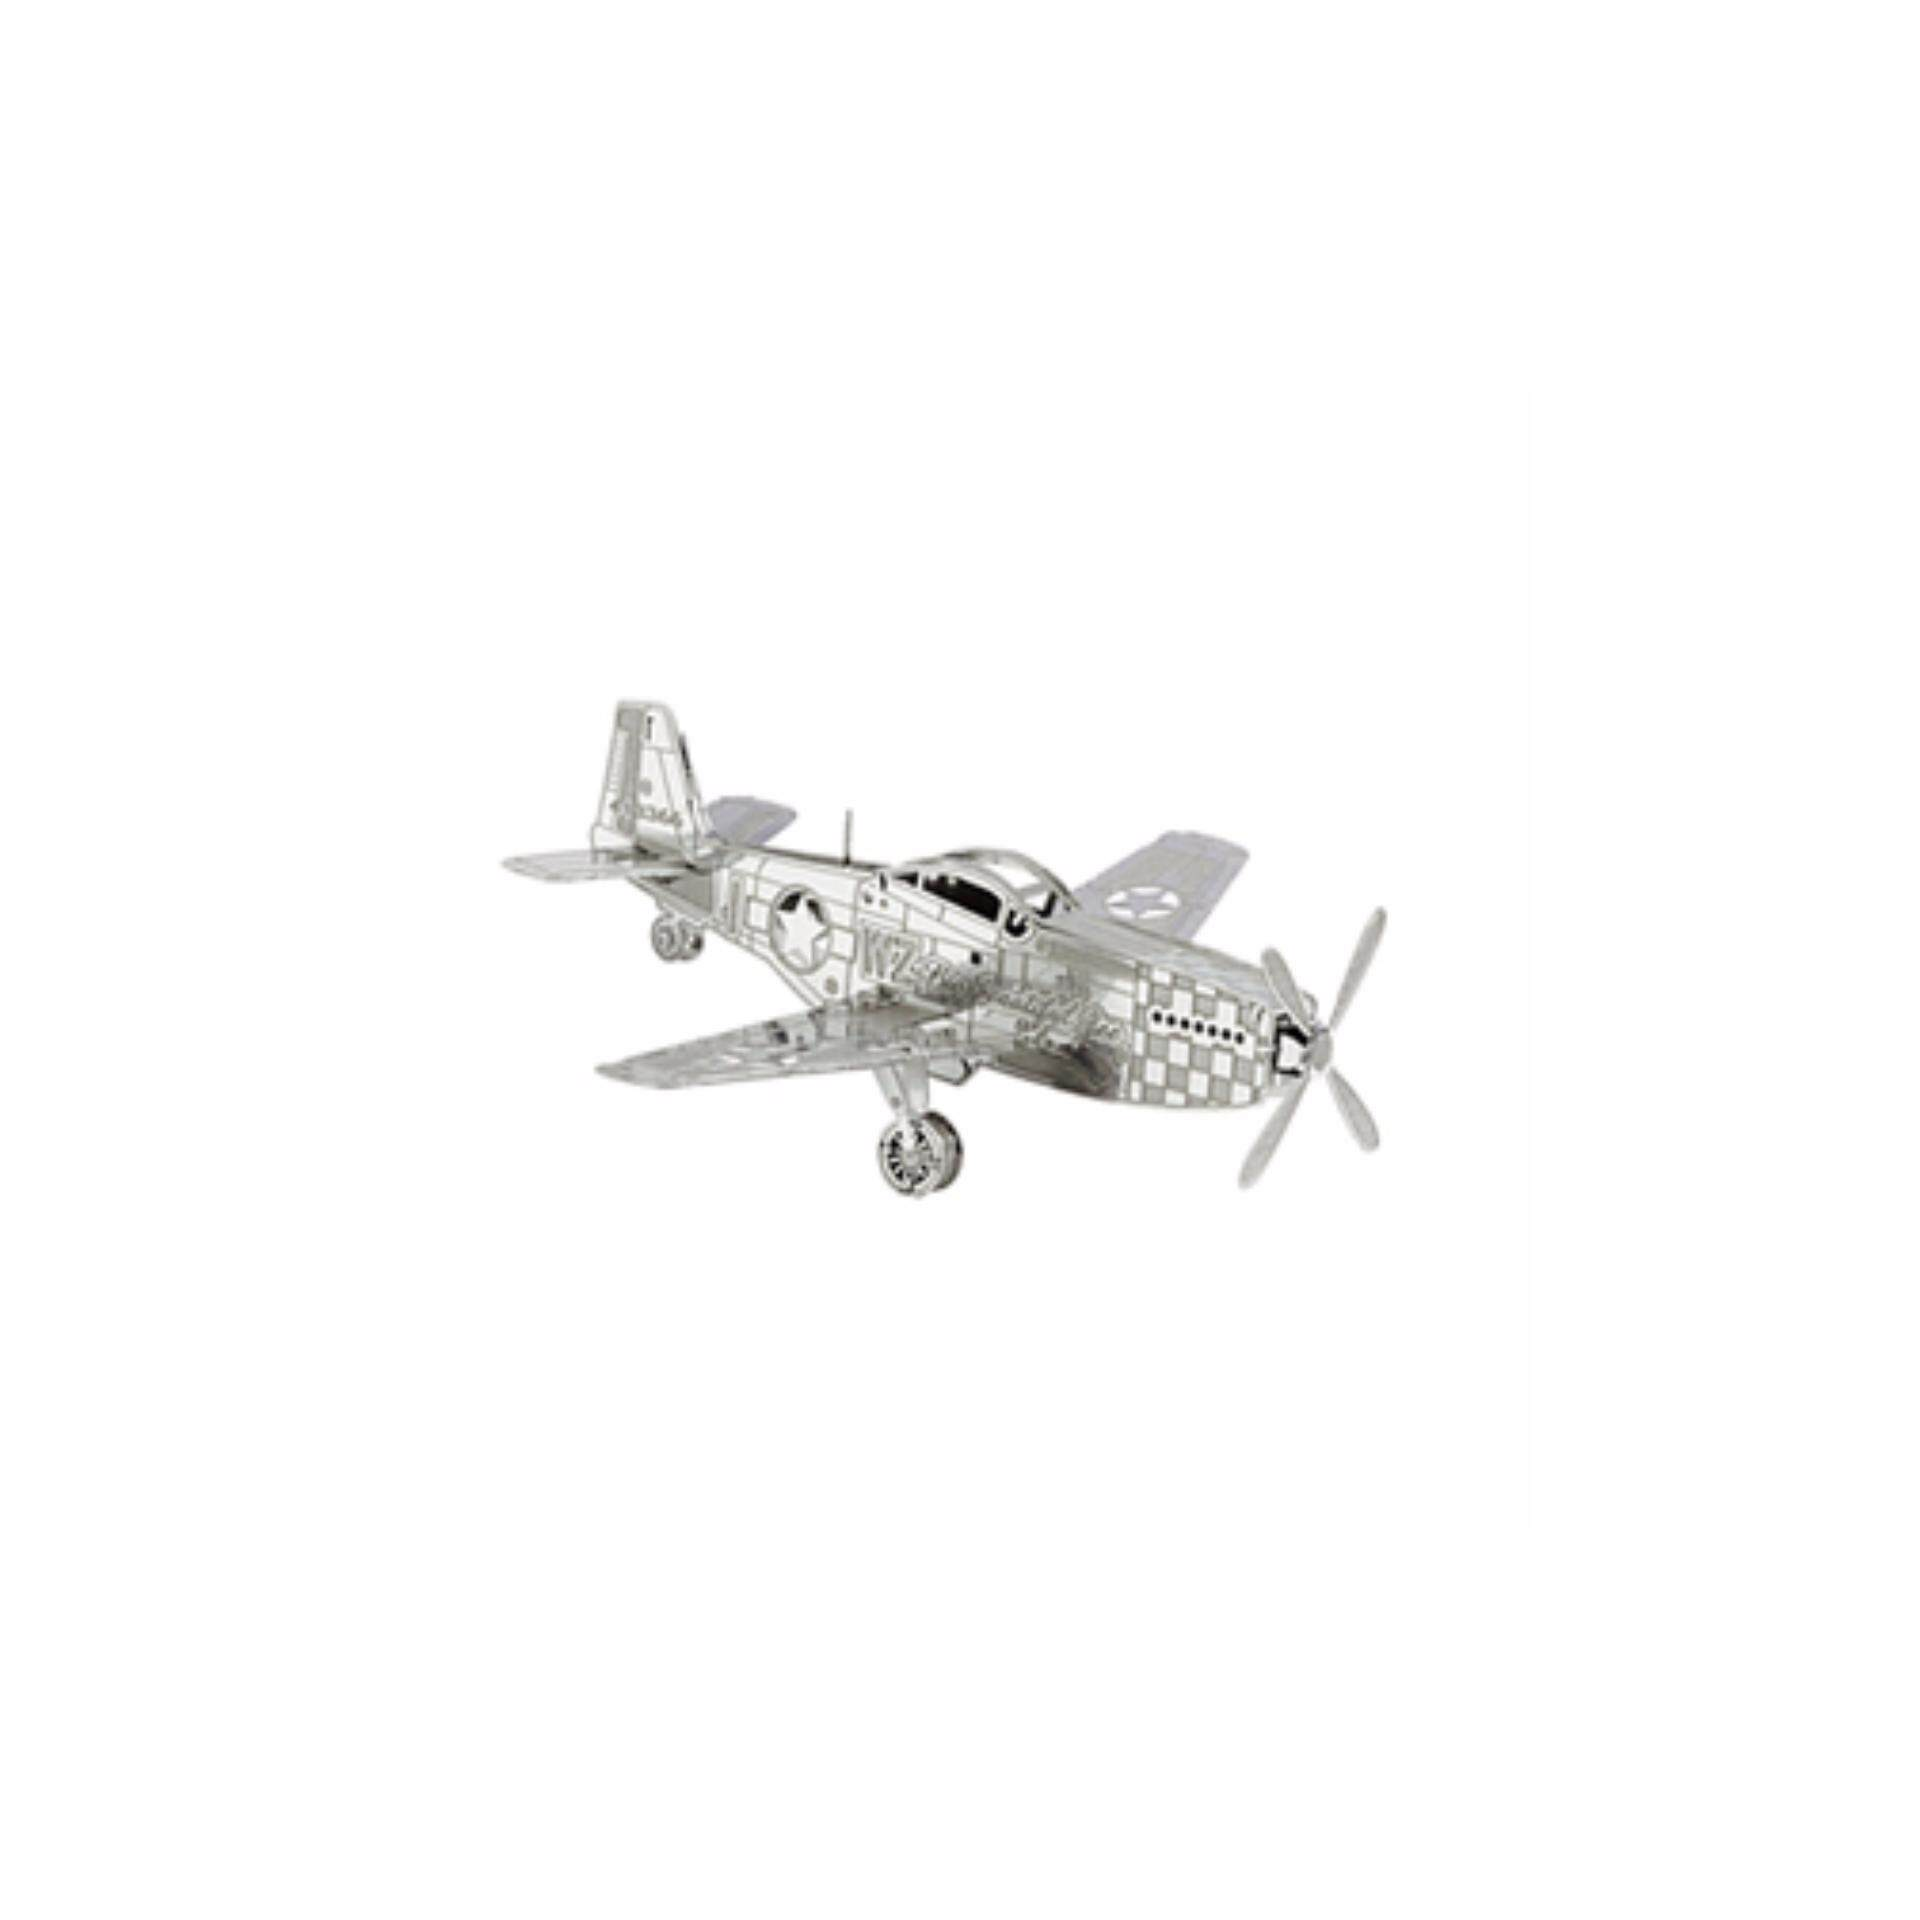 Mustang aircraft metal 3D puzzle